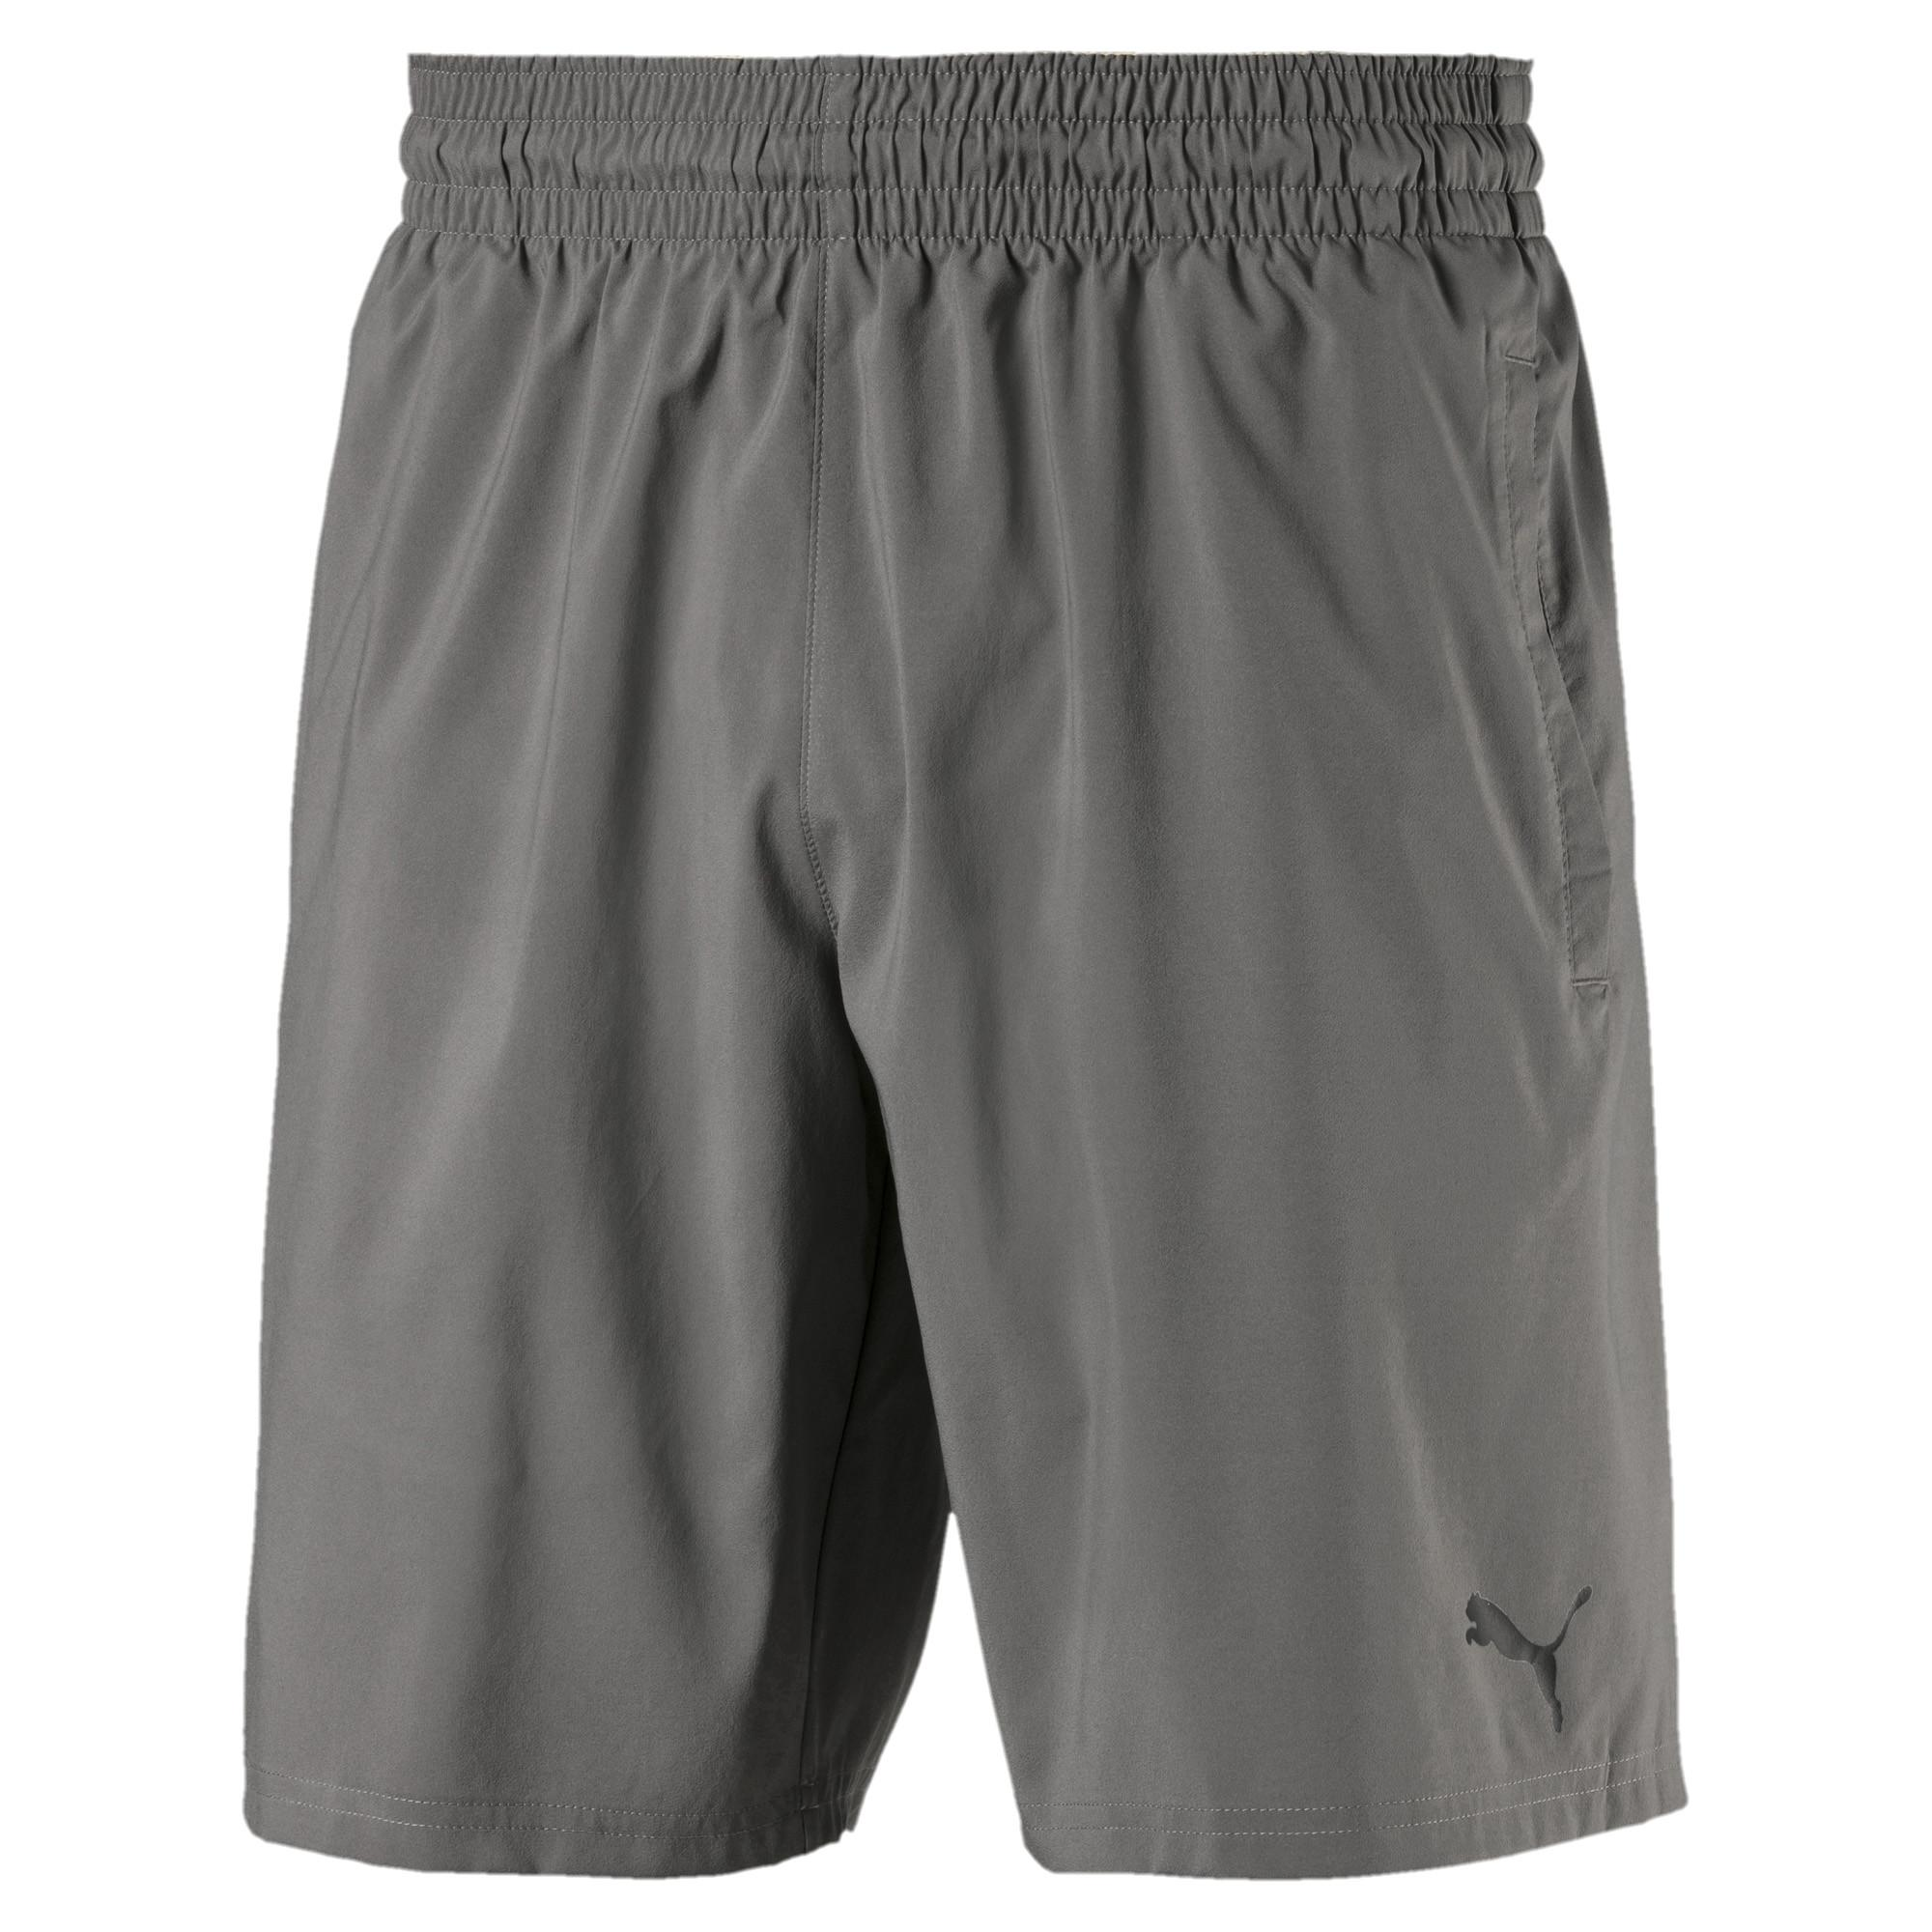 54f5c78f07 Lyst - PUMA A.c.e. Men's Woven Shorts in Gray for Men - Save 31%